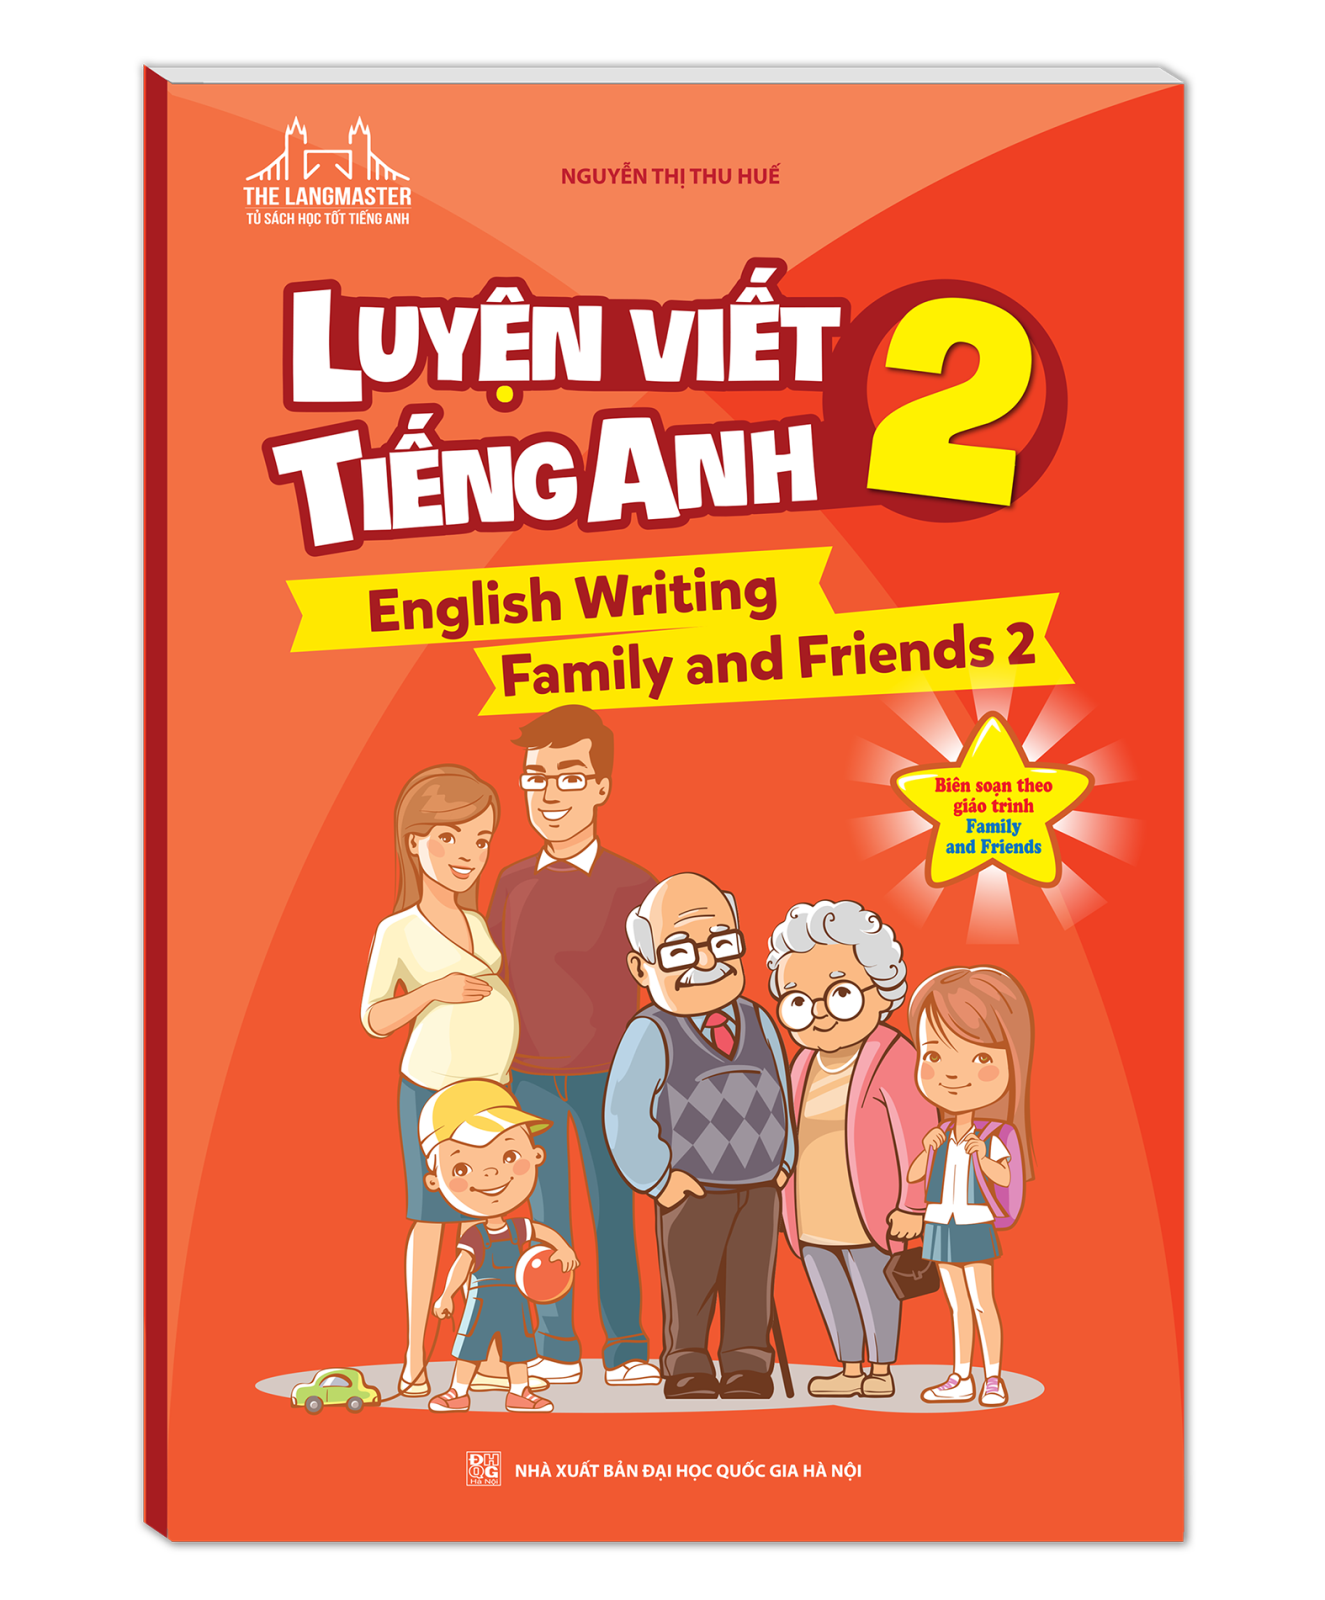 The langmaster - Luyện viết tiếng Anh 2 (English Writing Family and Friends 2)